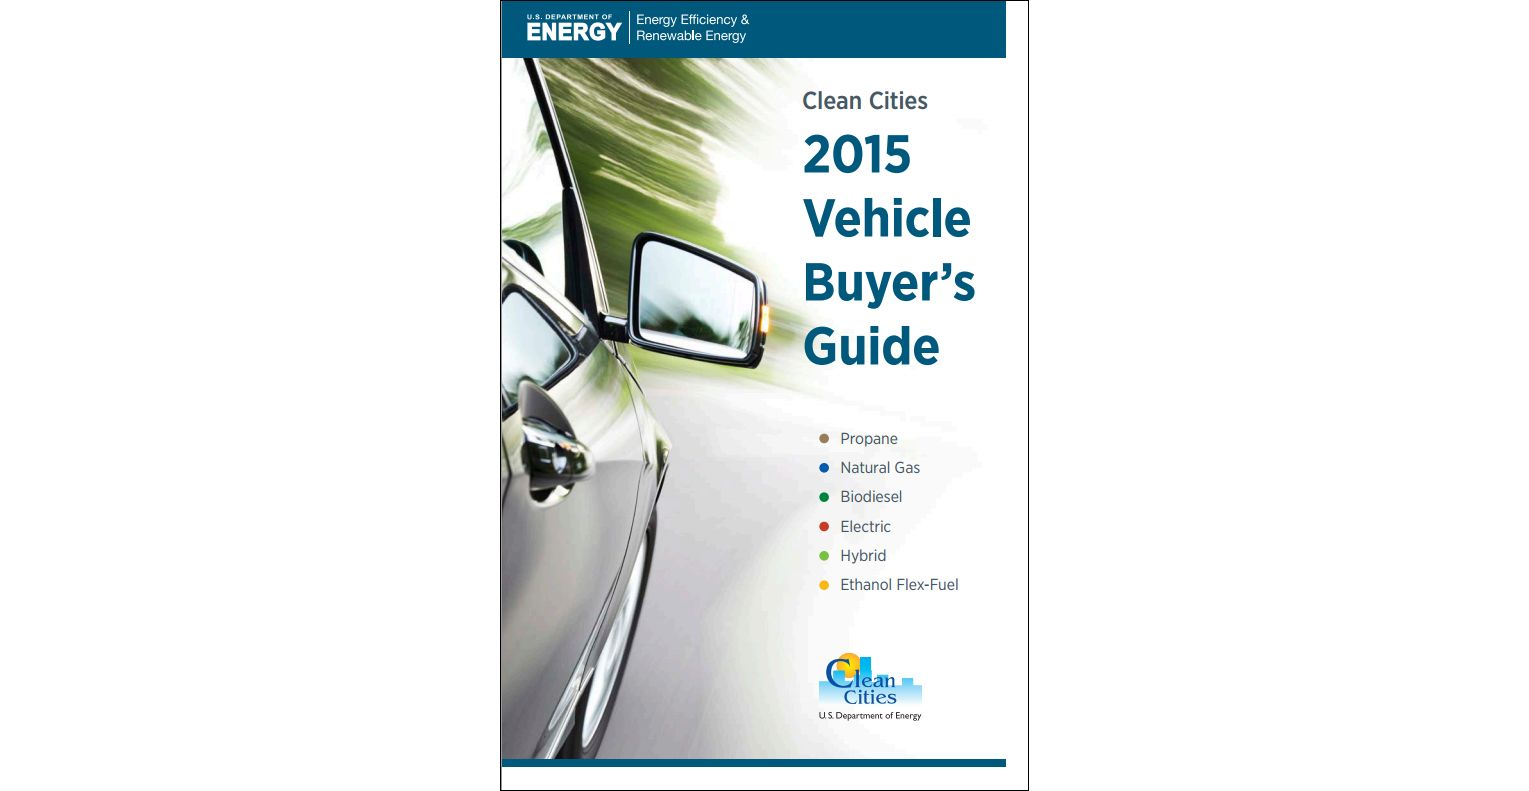 Clean Cities Releases 2015 Vehicle Buyer's Guide